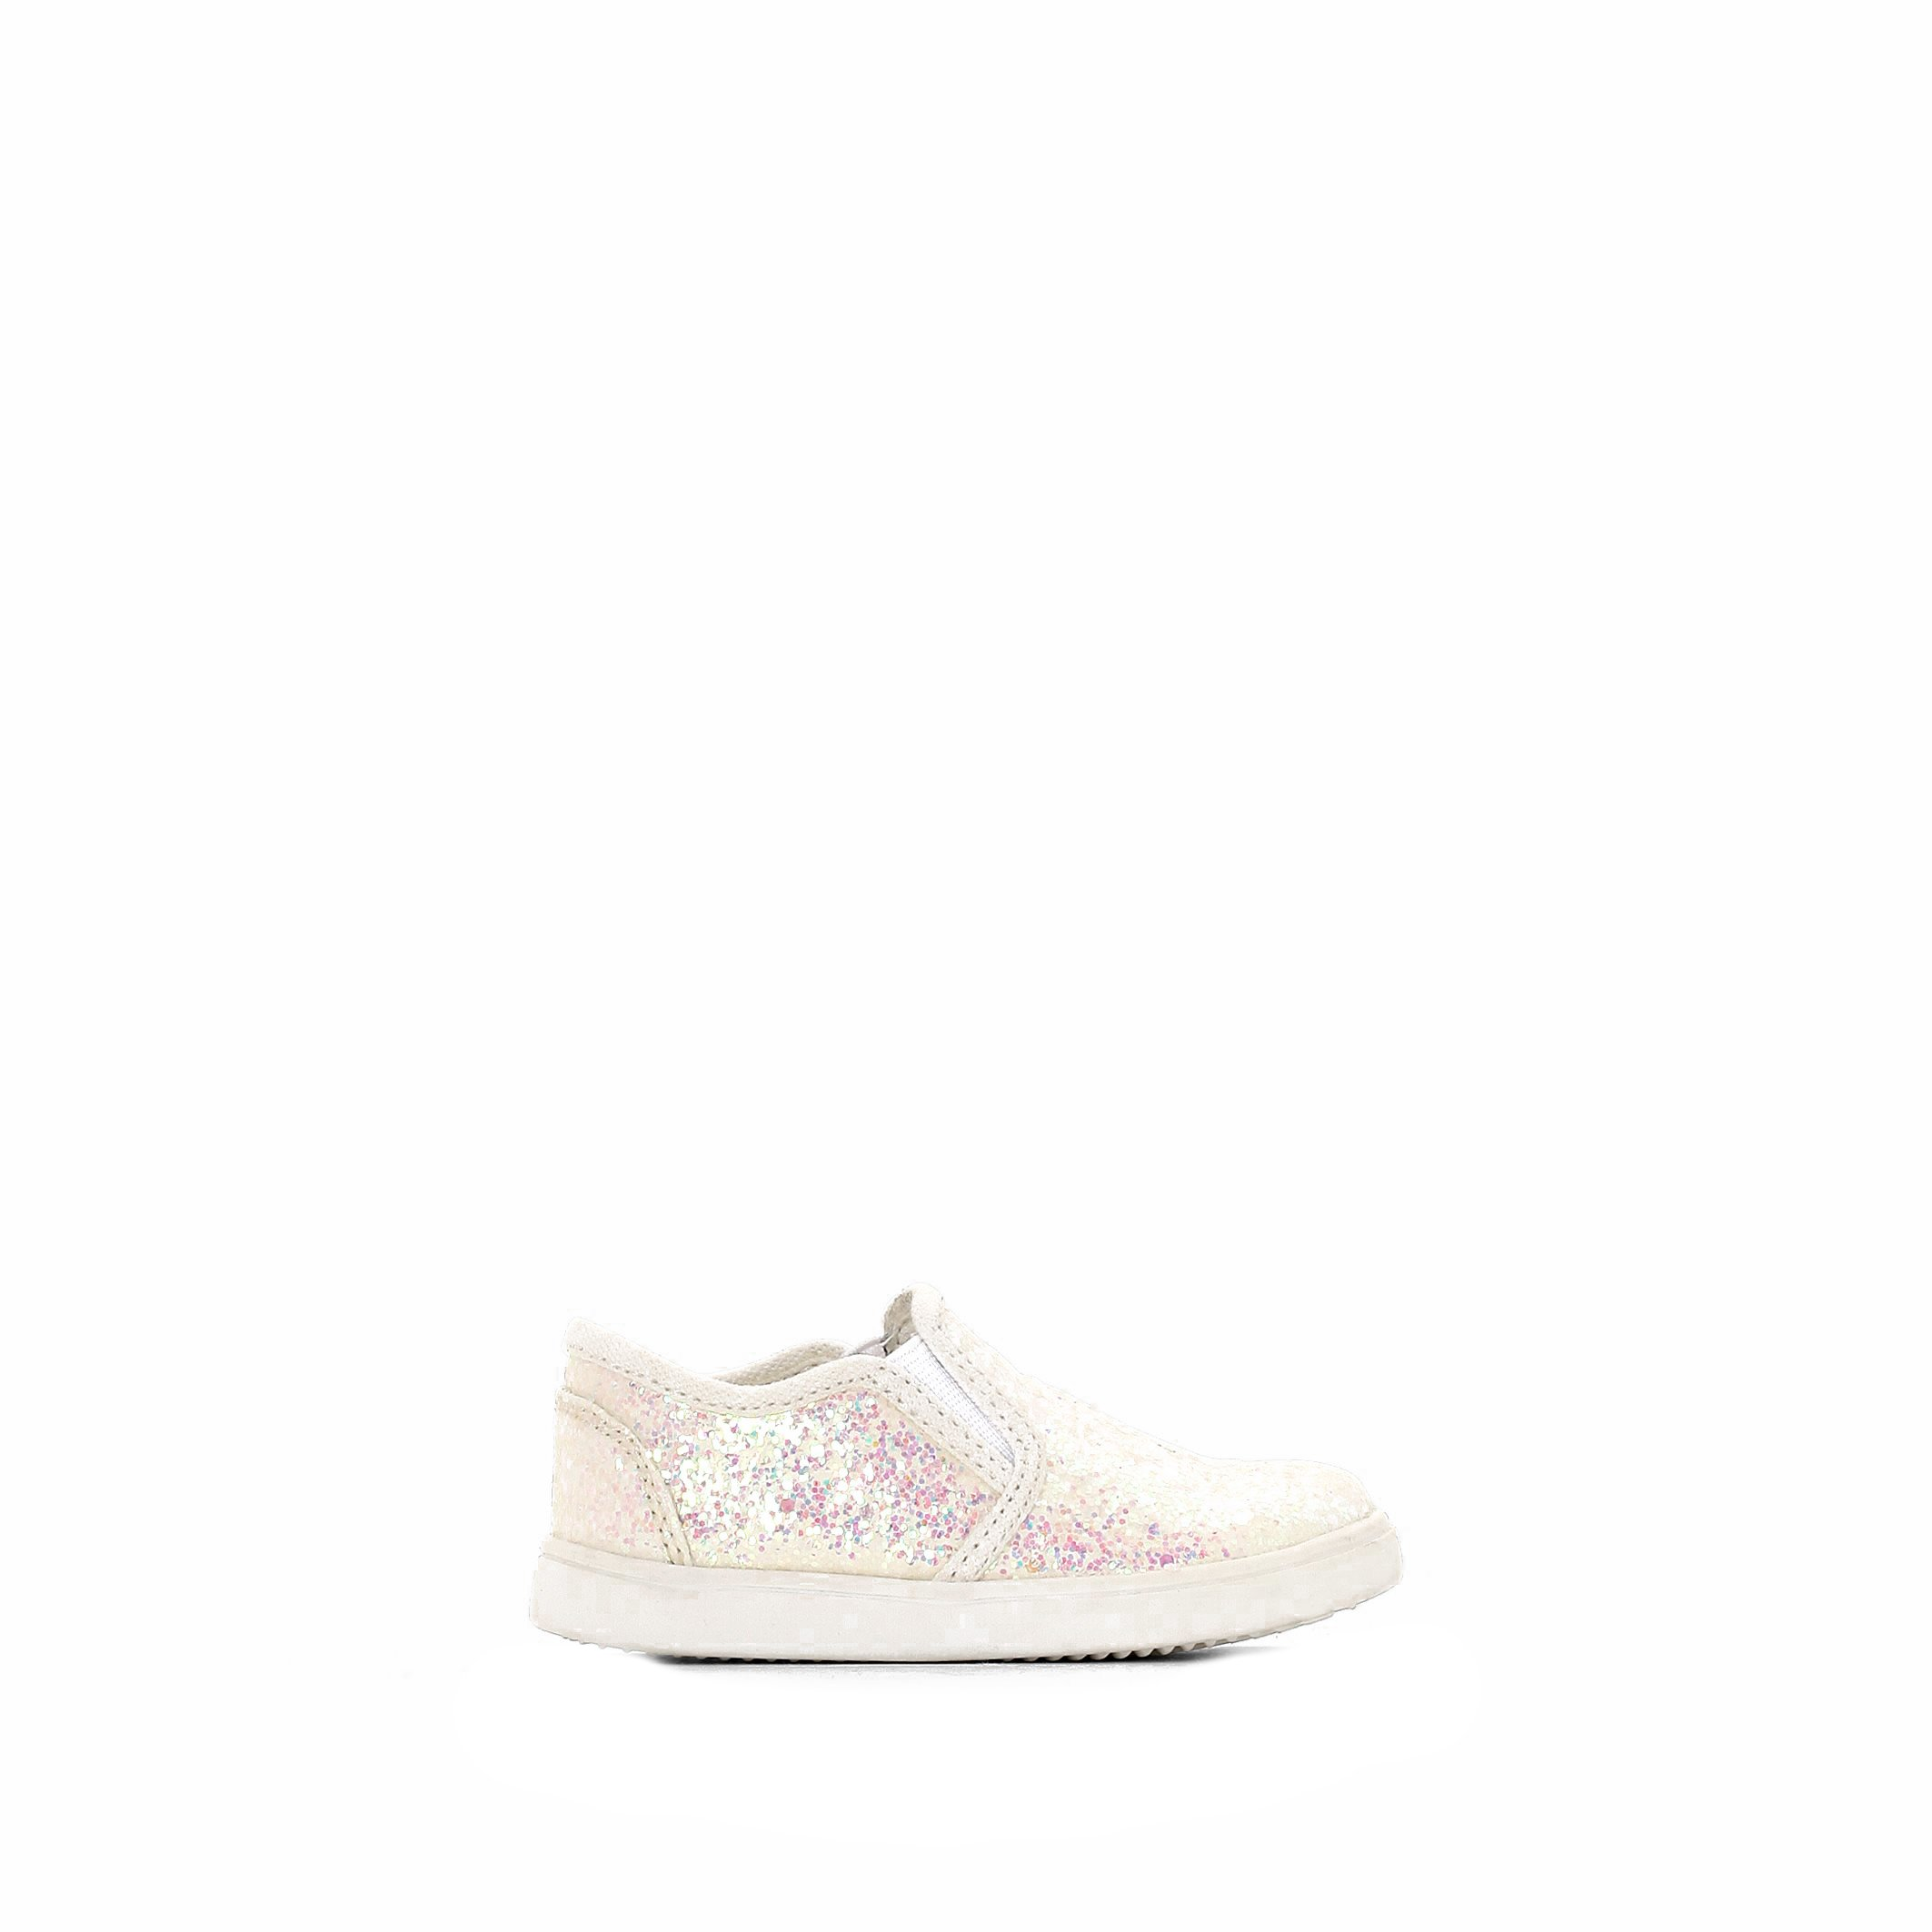 La Redoute Collections Big Girls Glittery Slip-On Trainers Beige Size 19